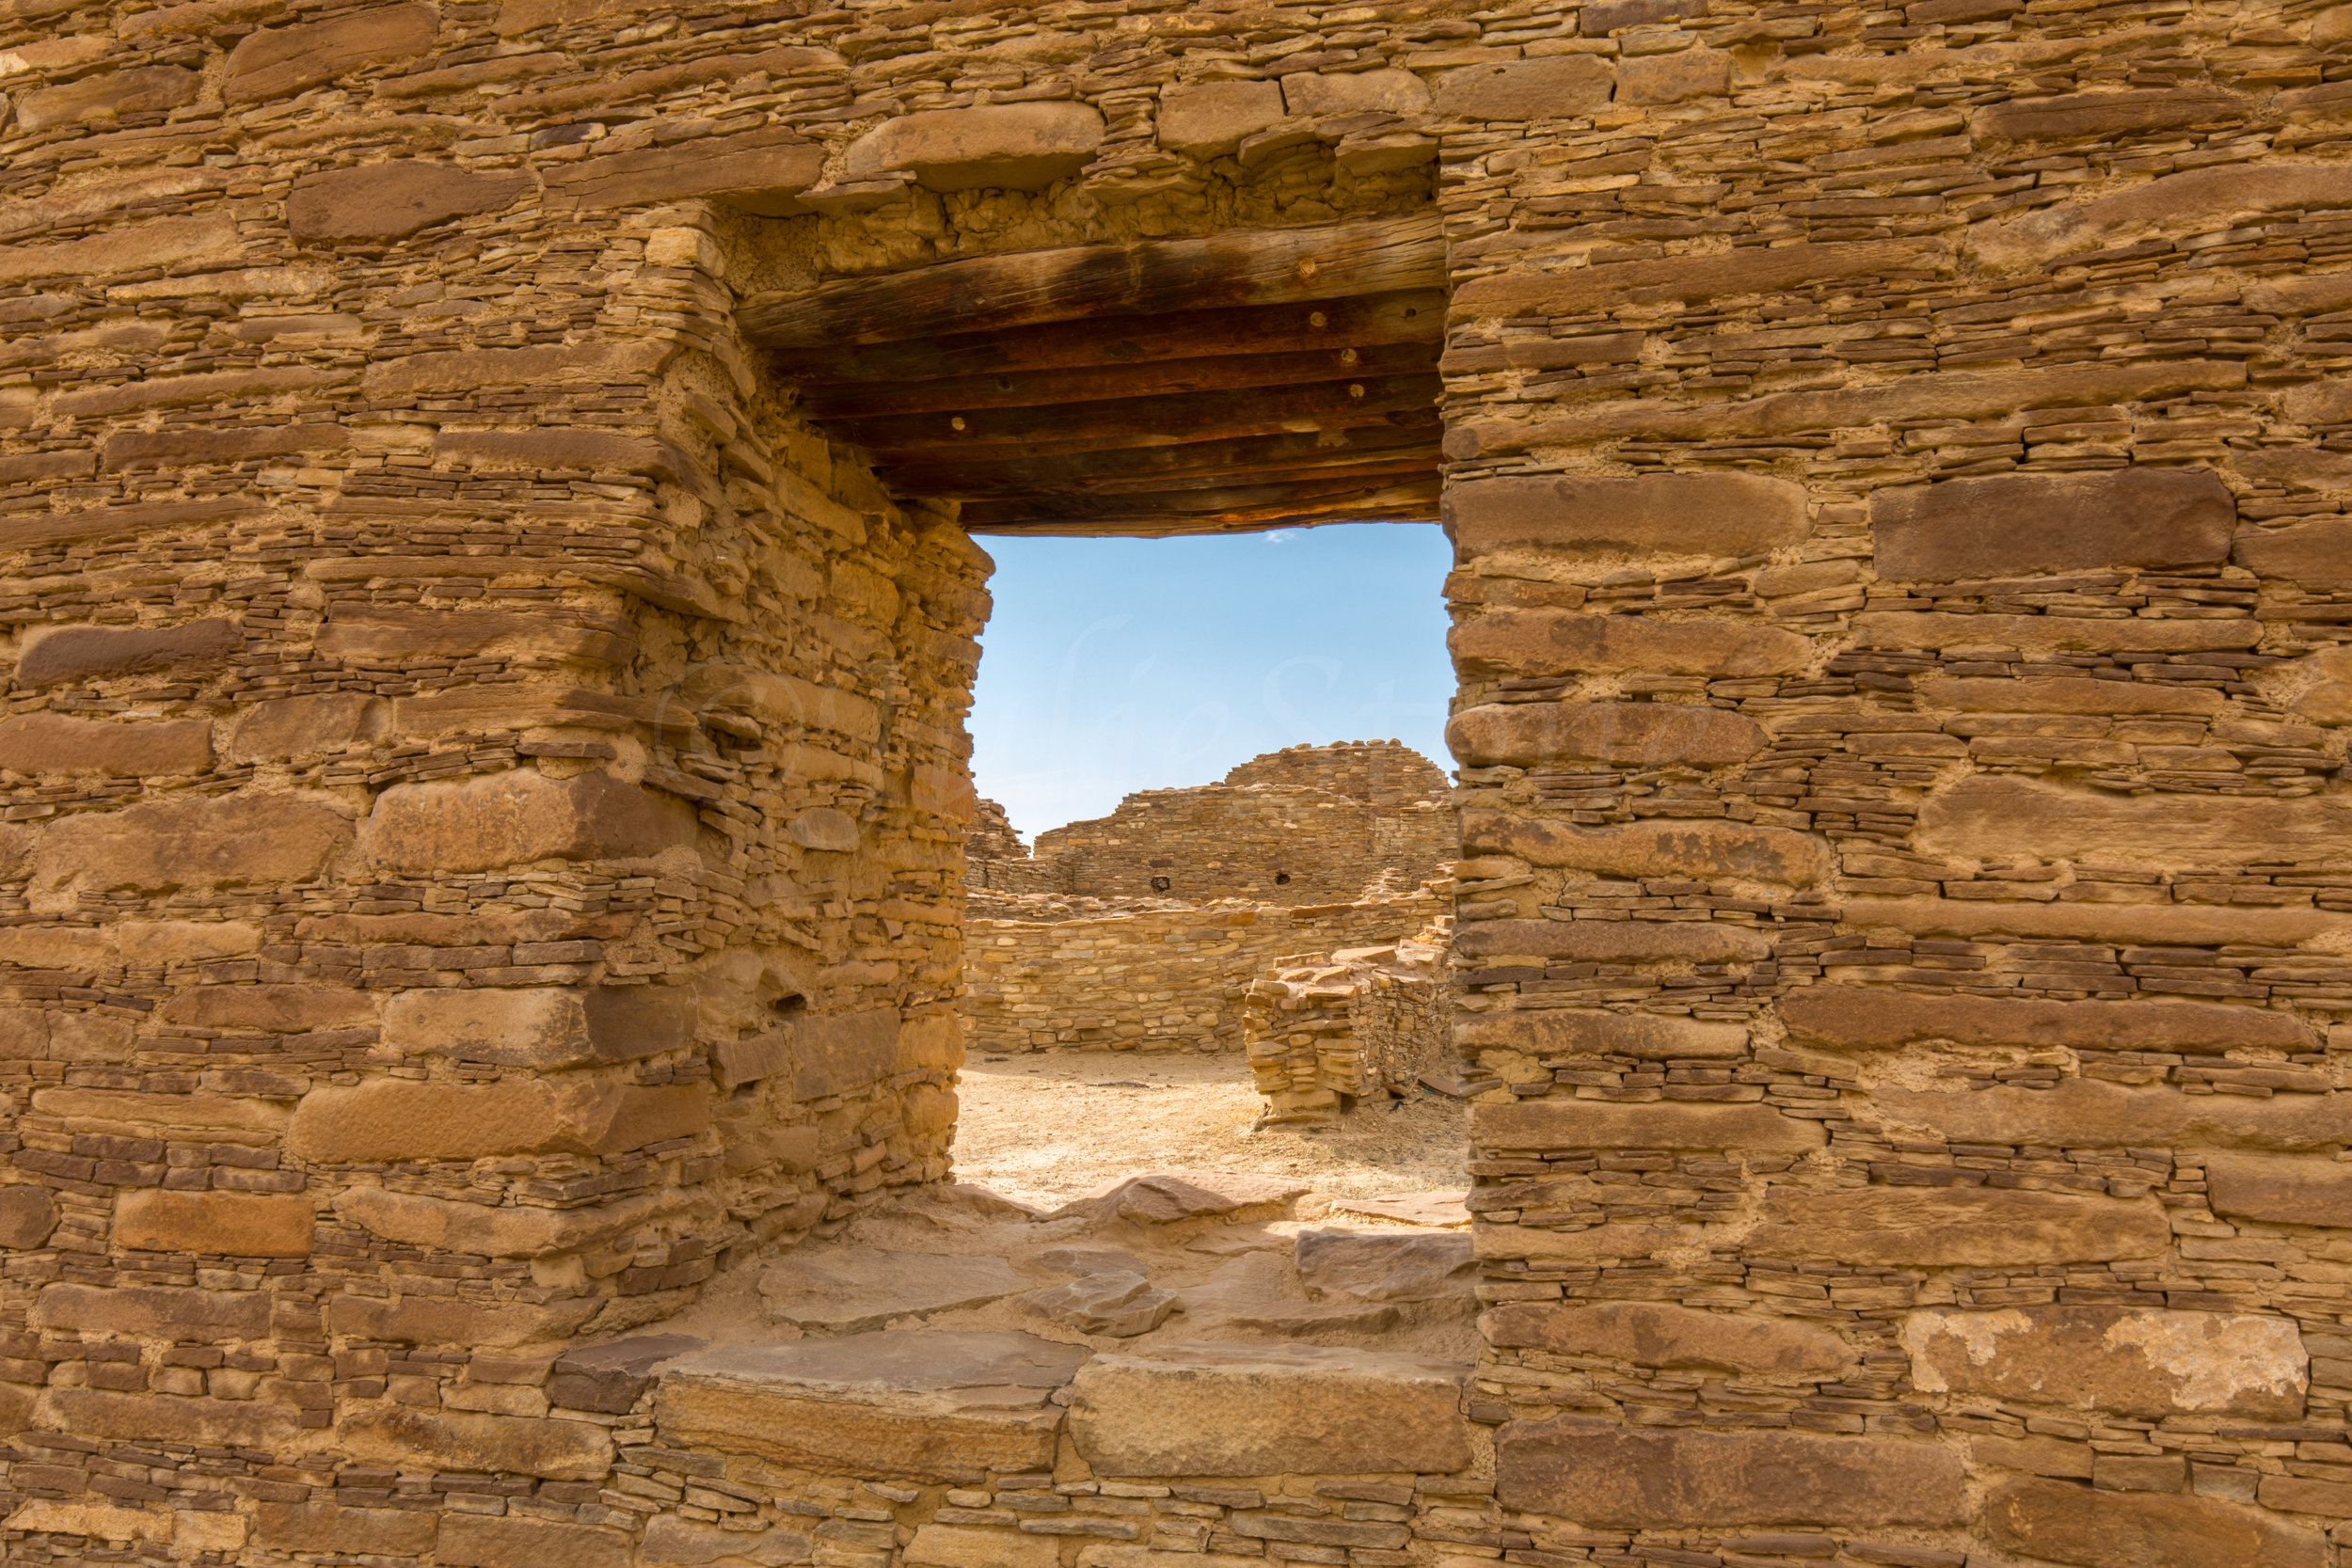 Chaco National Park, Image # 6308